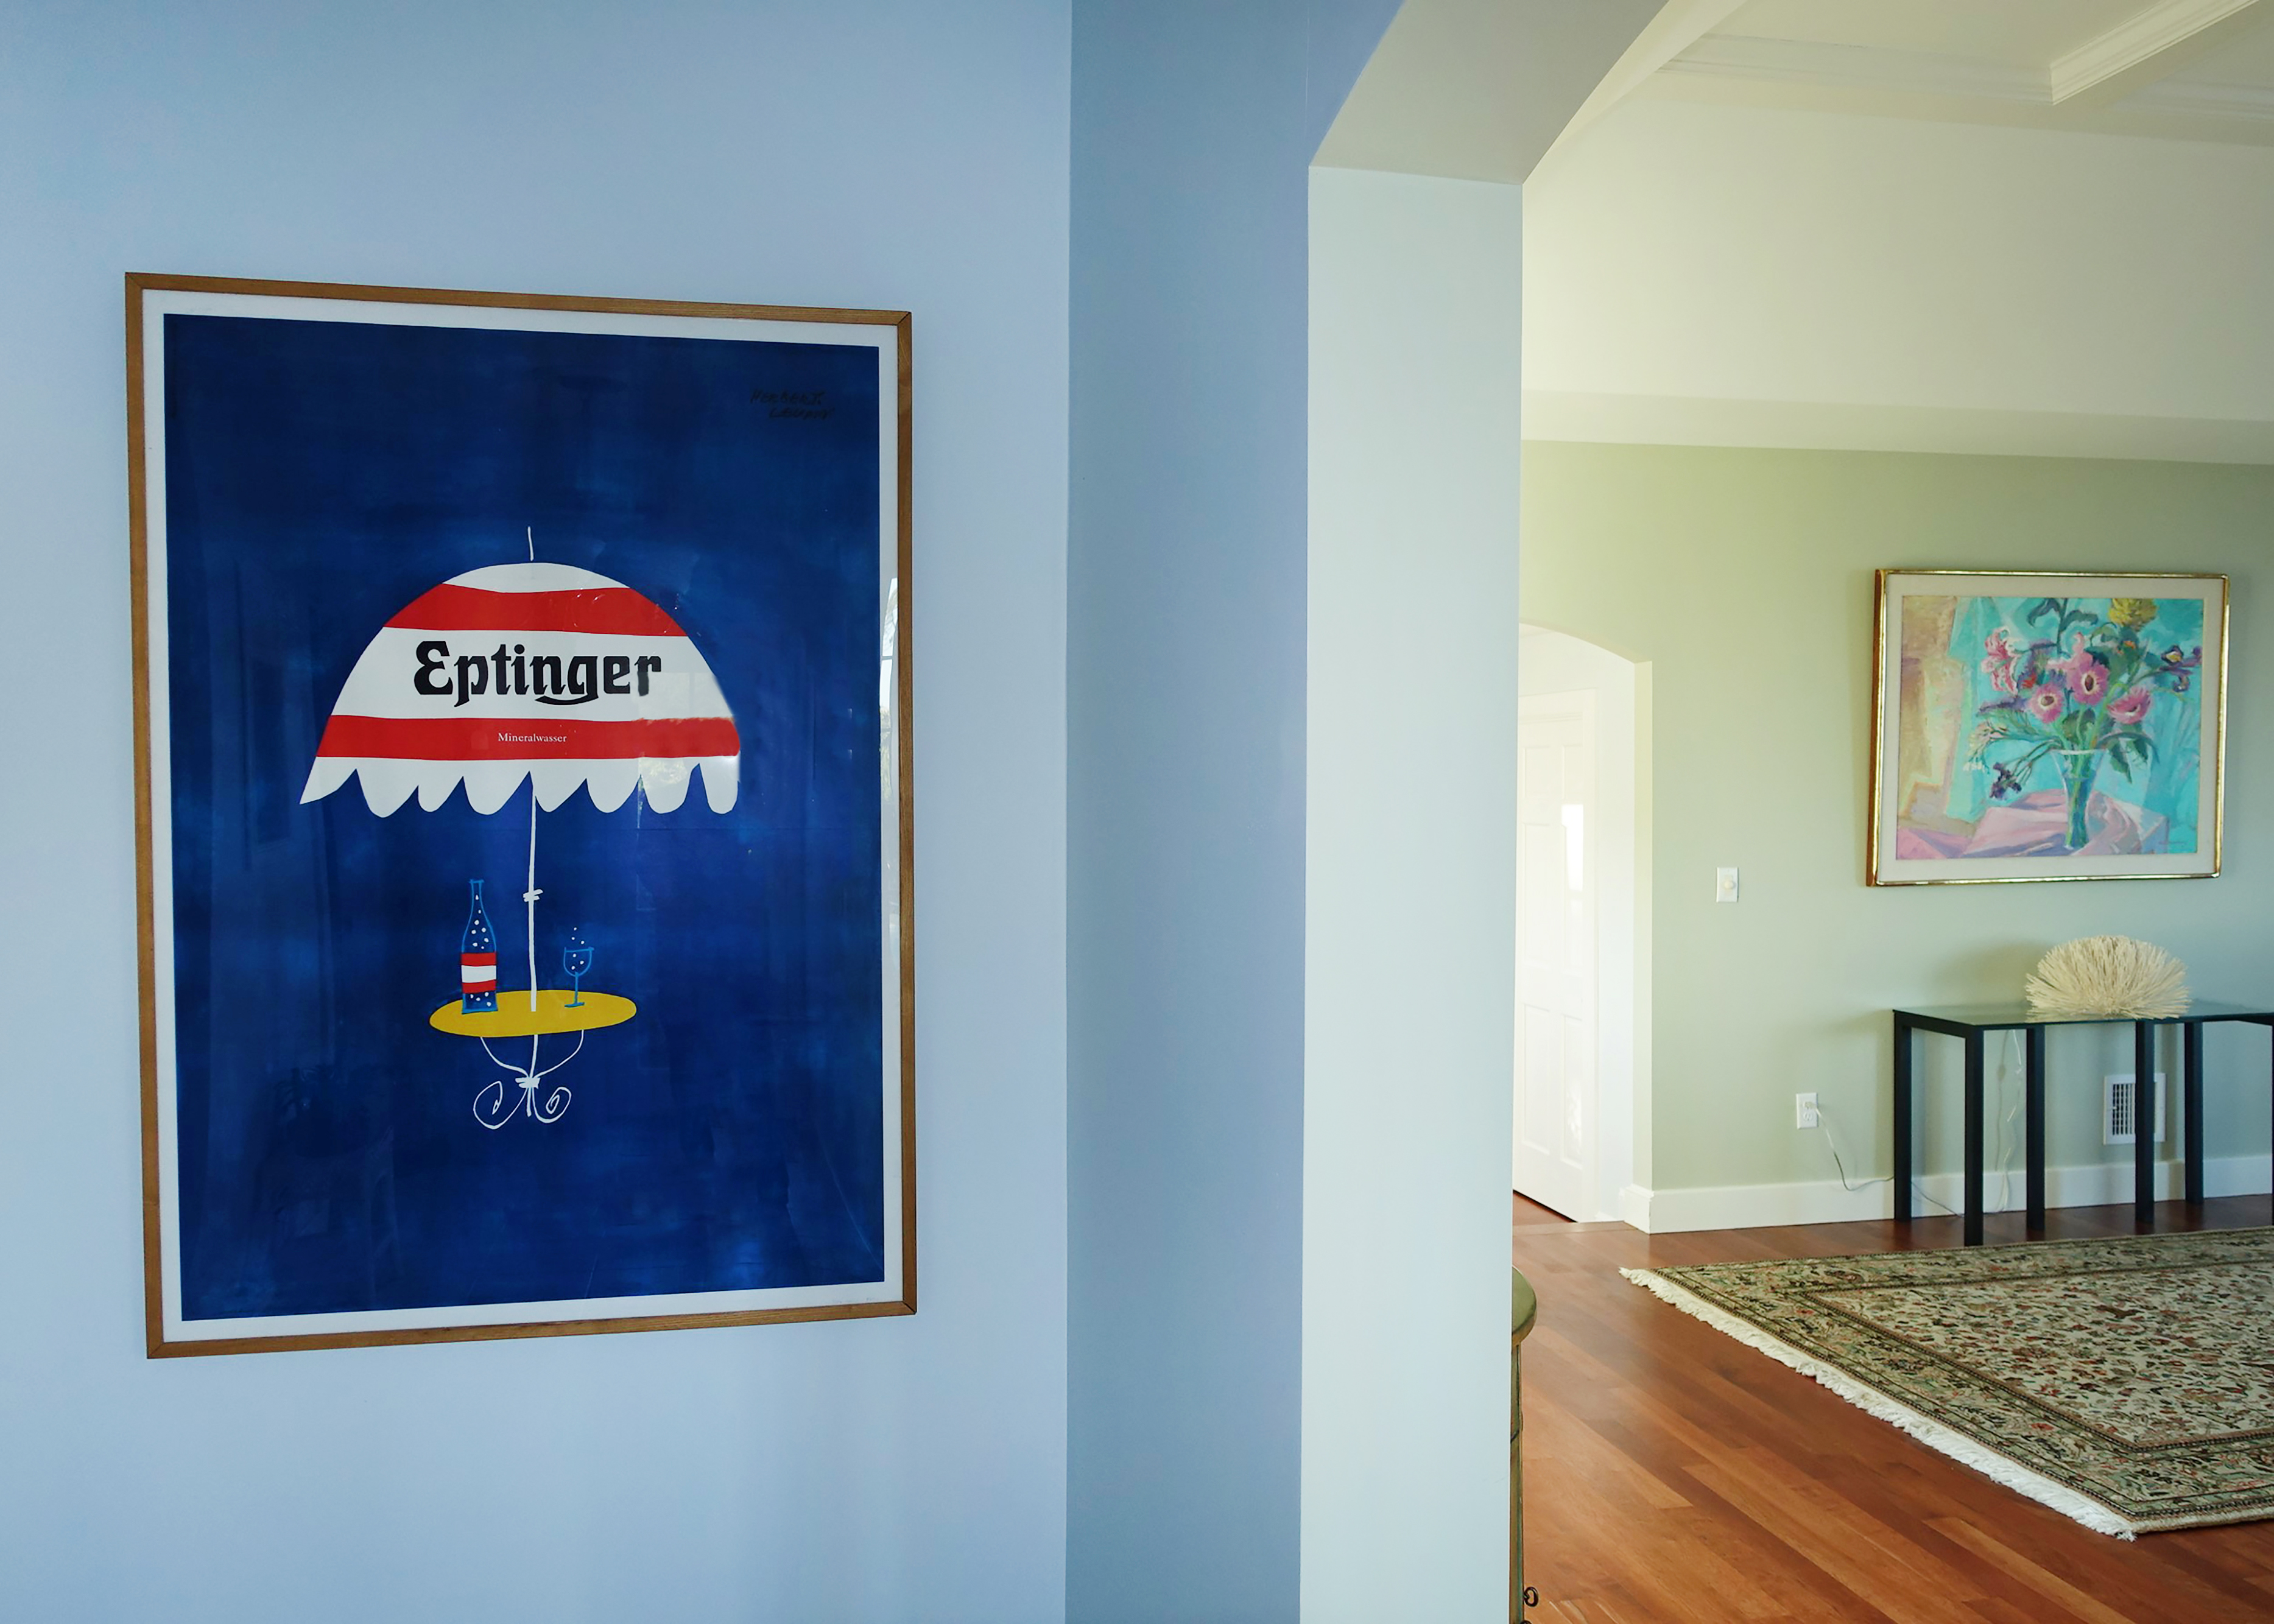 hallway with view into next room and Eptinger poster with striped umbrella; blue, red, yellow, green